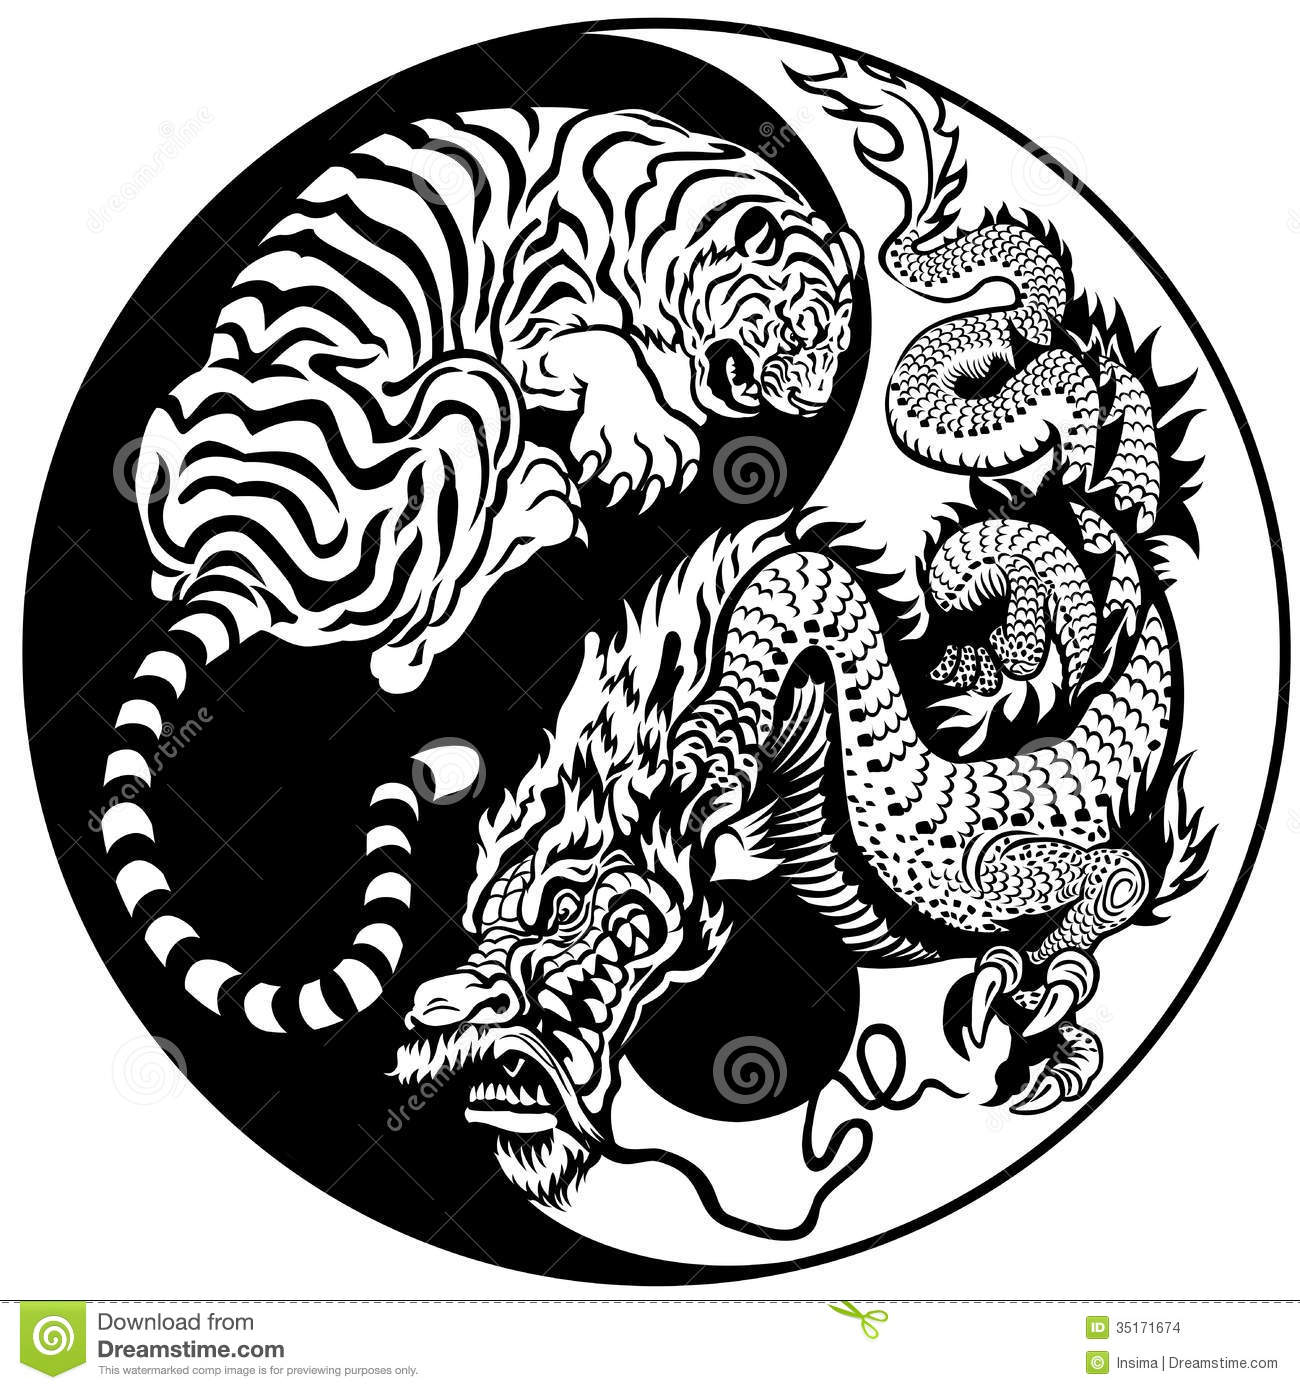 Tiger and dragon symbol photo gallery of tiger and dragon symbol biocorpaavc